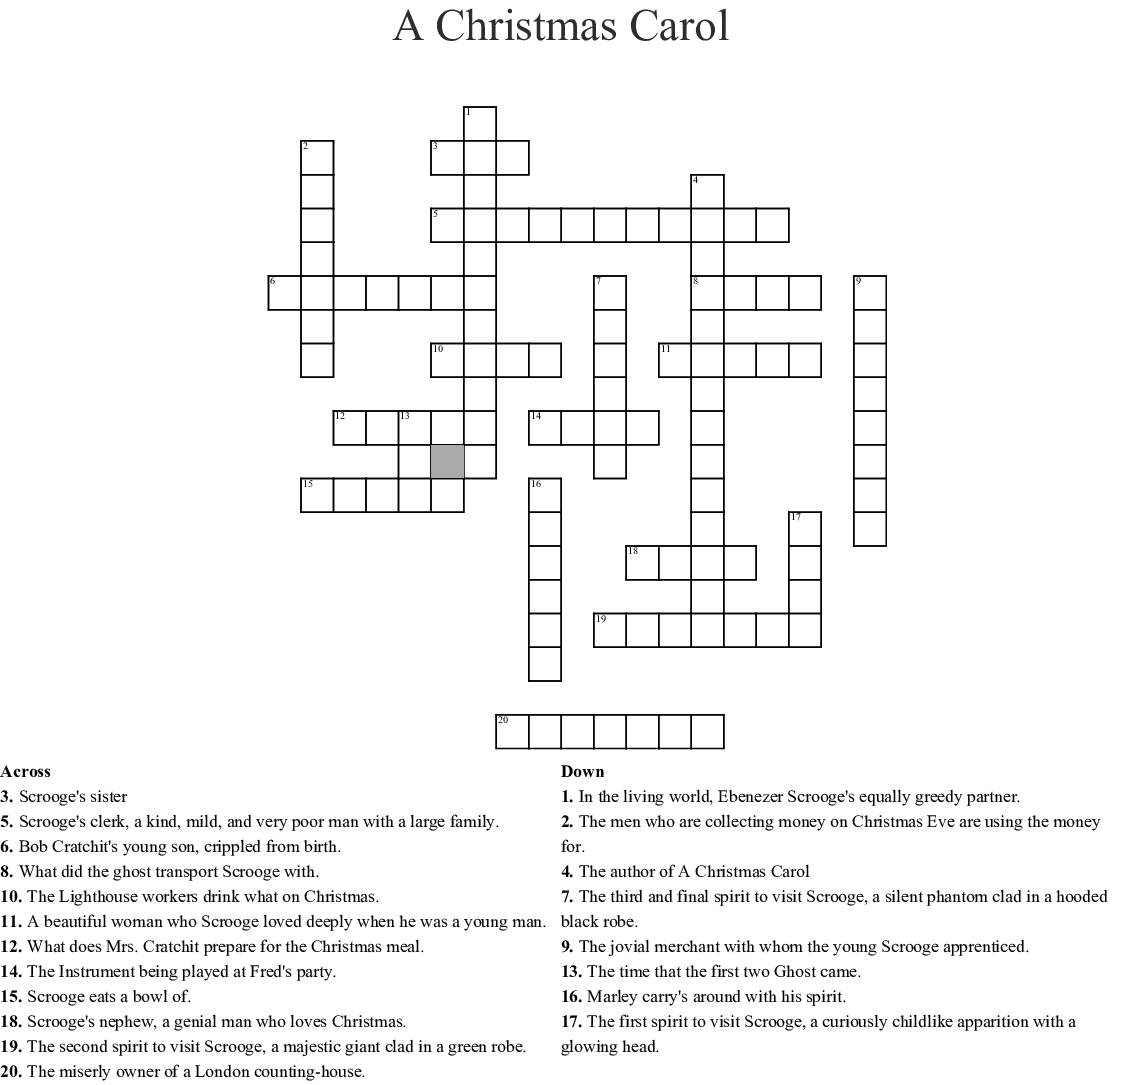 A Christmas Carol By Charles Dickens Word Search